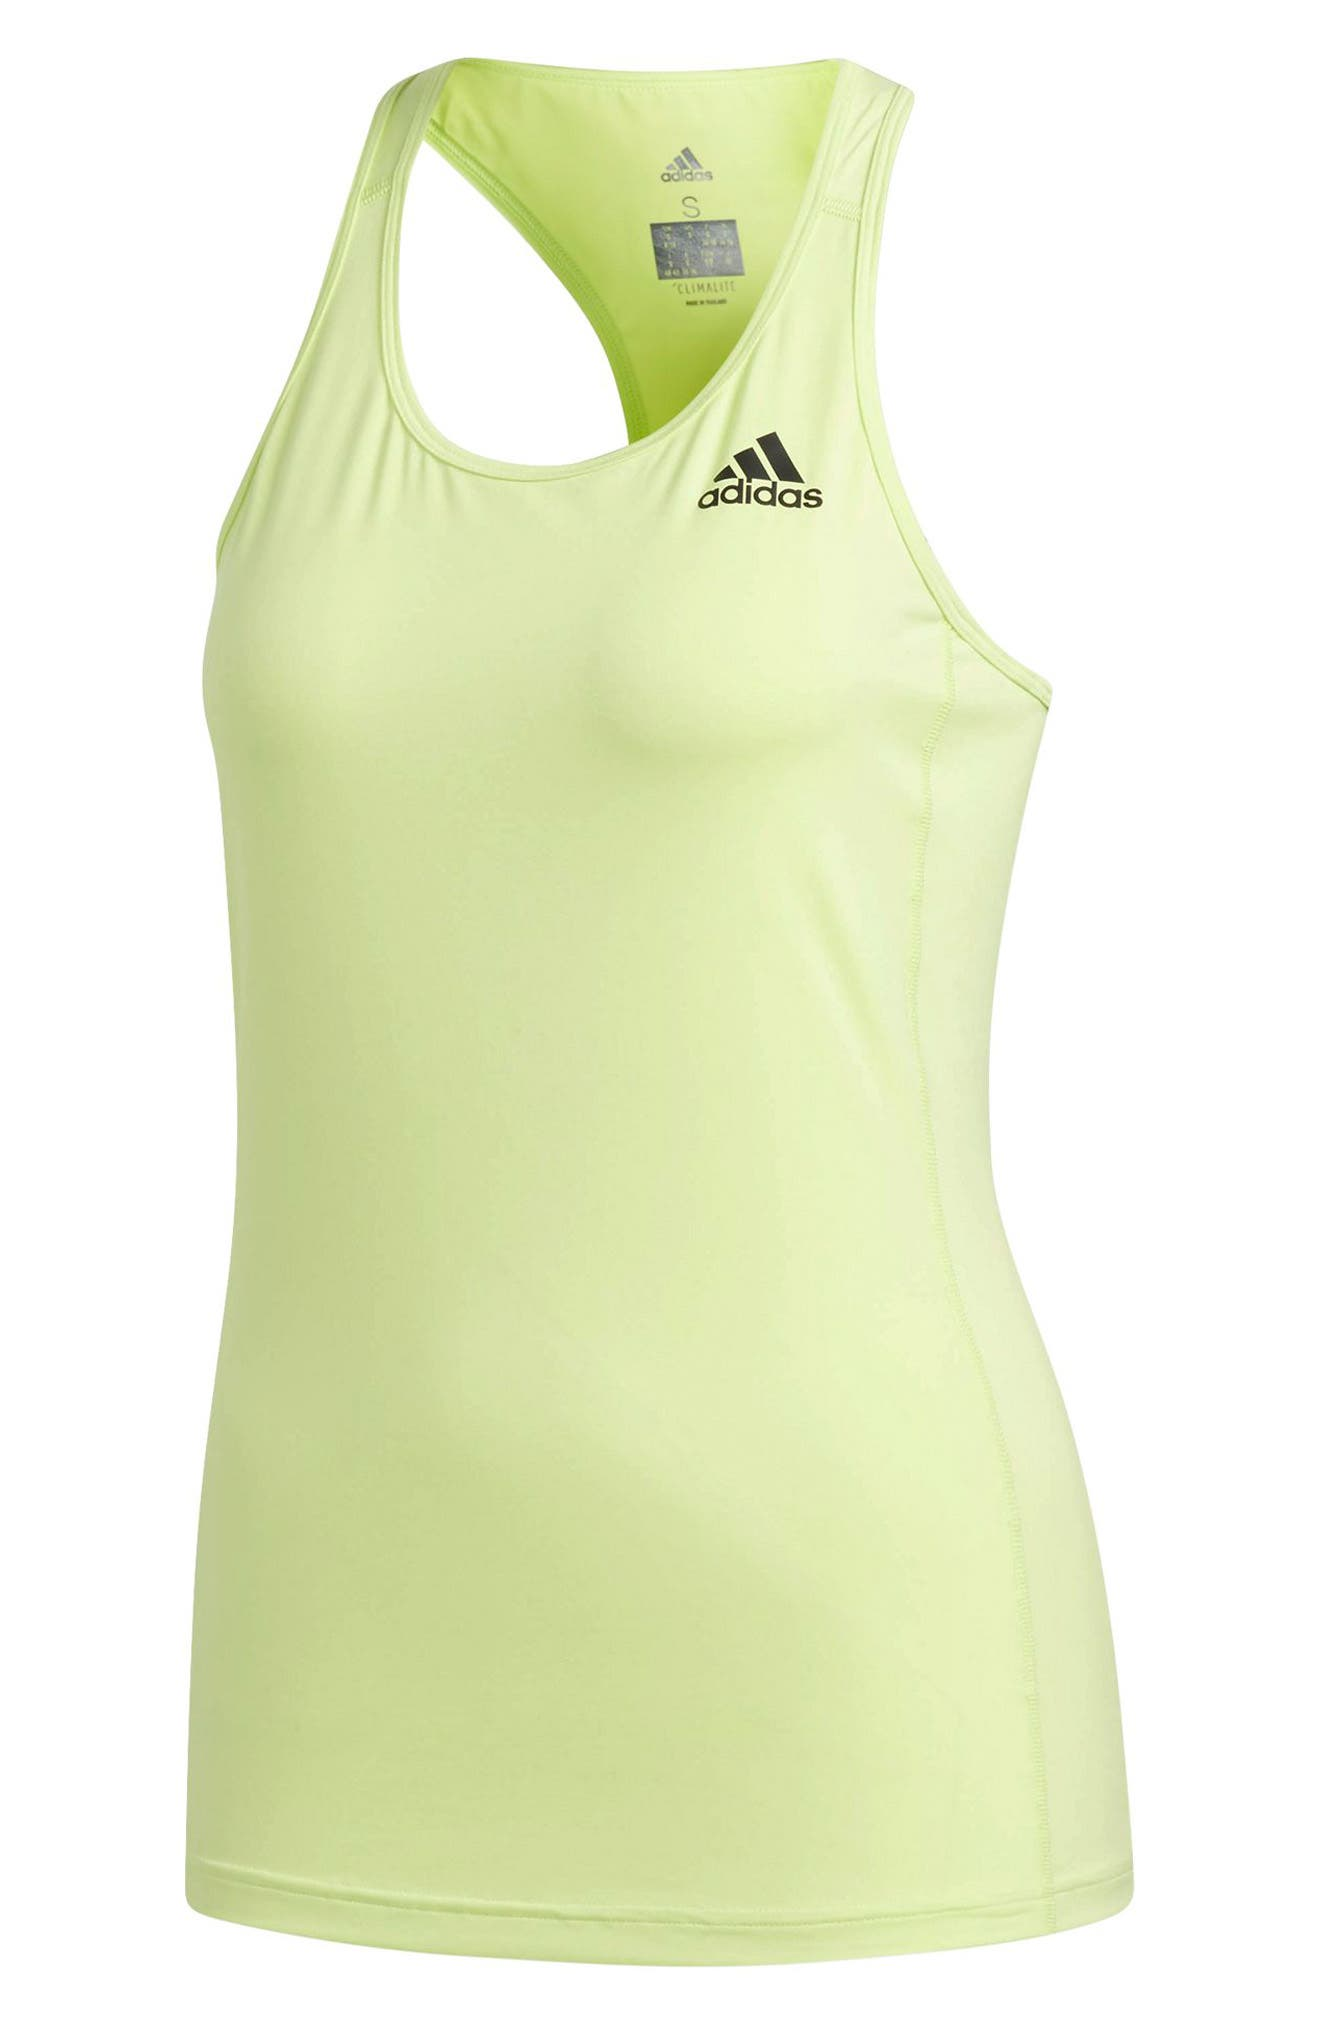 Performer Baseline Tank Top,                             Alternate thumbnail 7, color,                             Semi Frozen Yellow/ Black